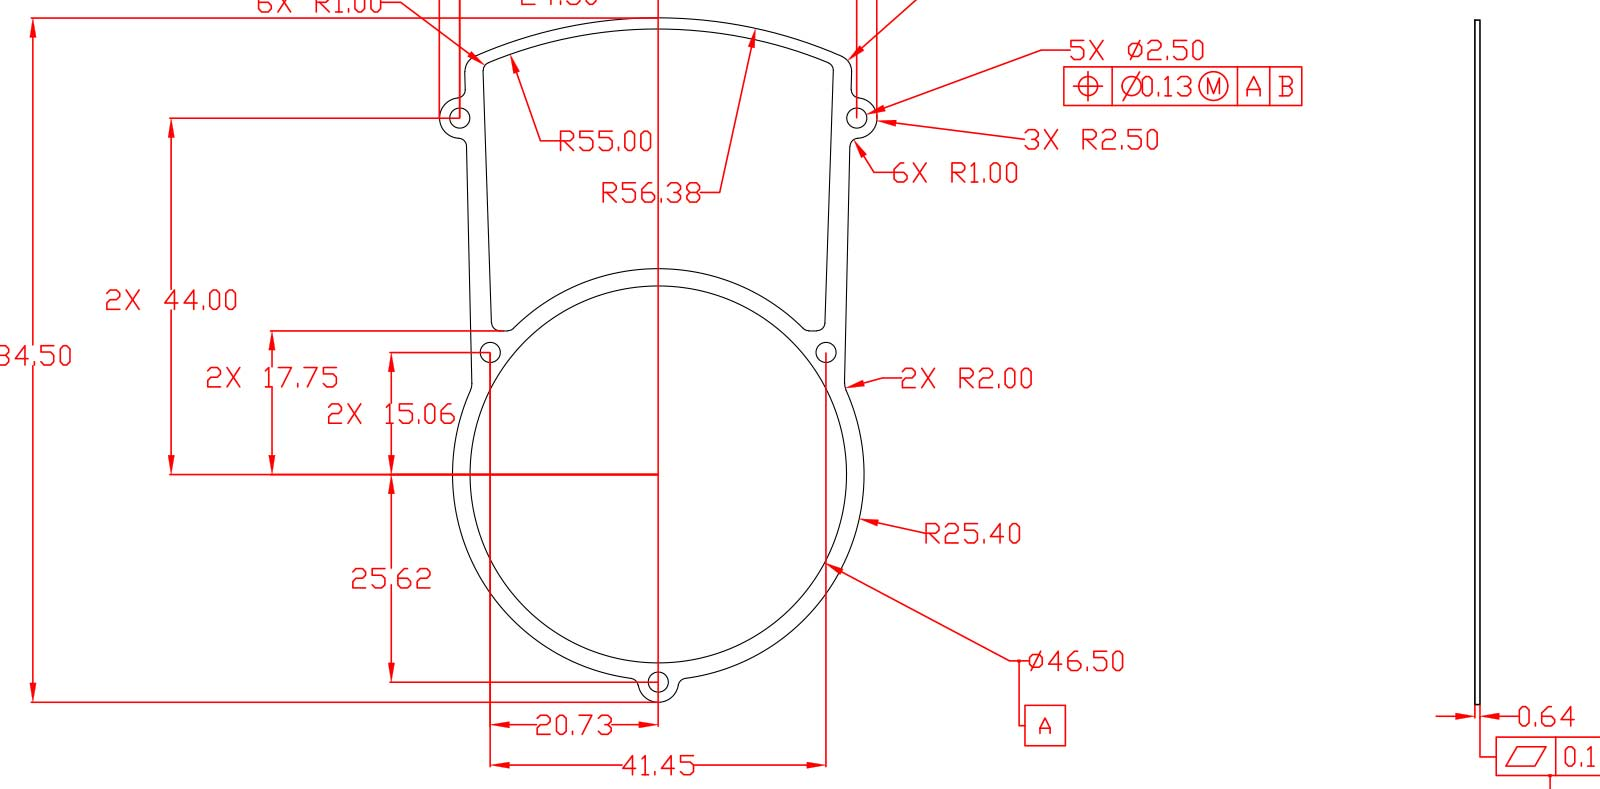 strouse-technical-drawing-11